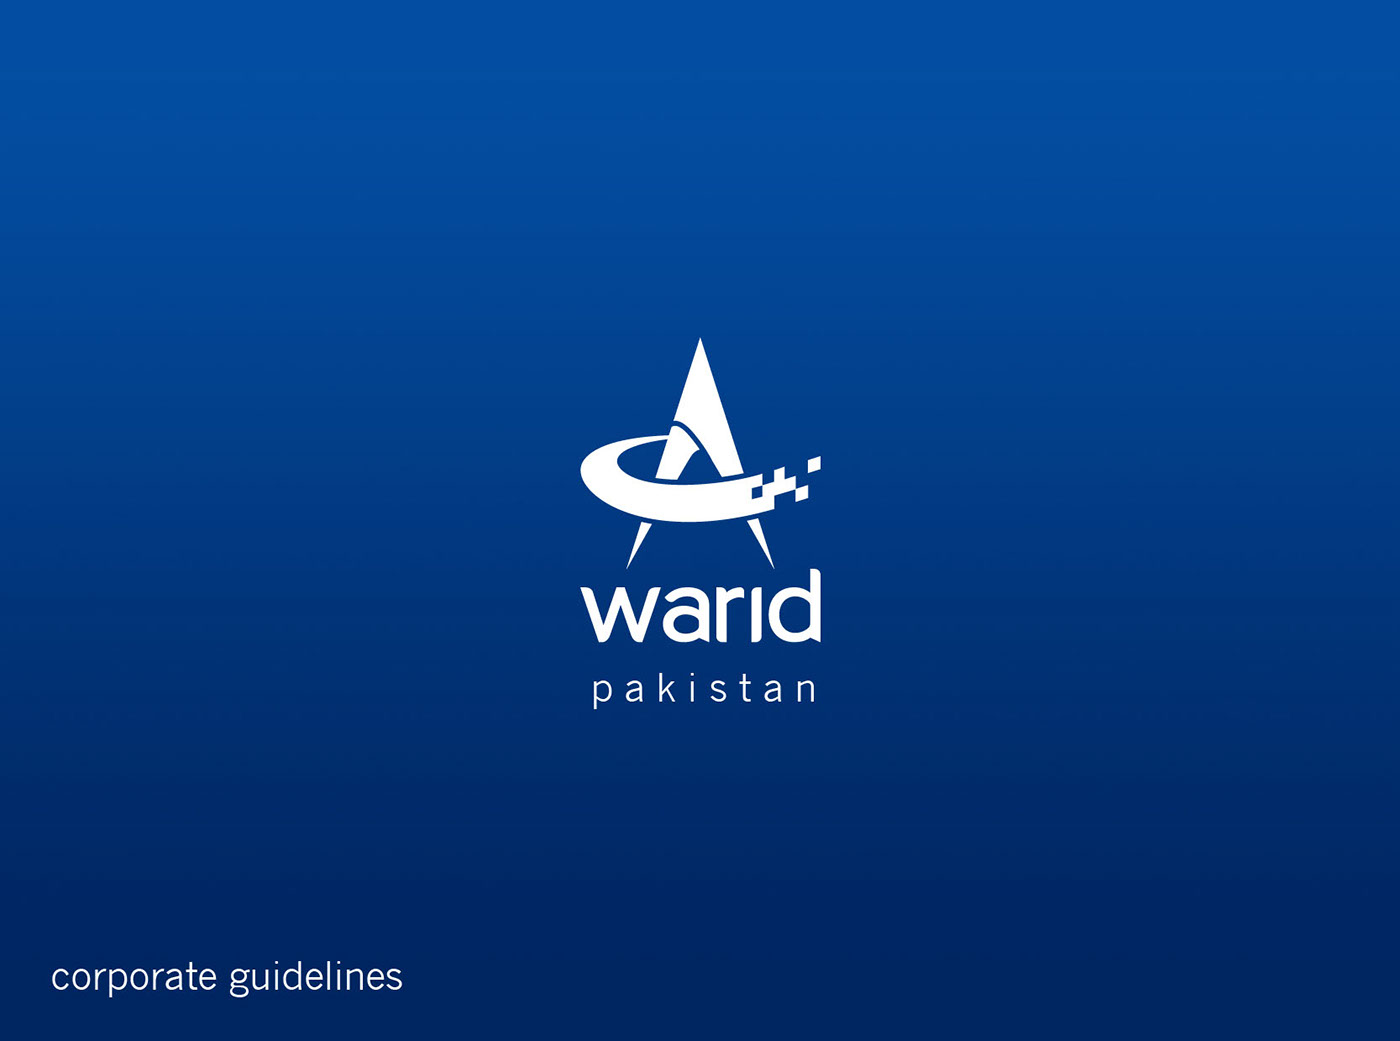 project on warid telecom To merge pakistan mobile communications limited (mobilink) and warid telecom (warid), creating pakistan's next generation digital telecommunications provider over 50 million customers in pakistan will benefit from high-speed mobile telecommunications and a best-in-class.